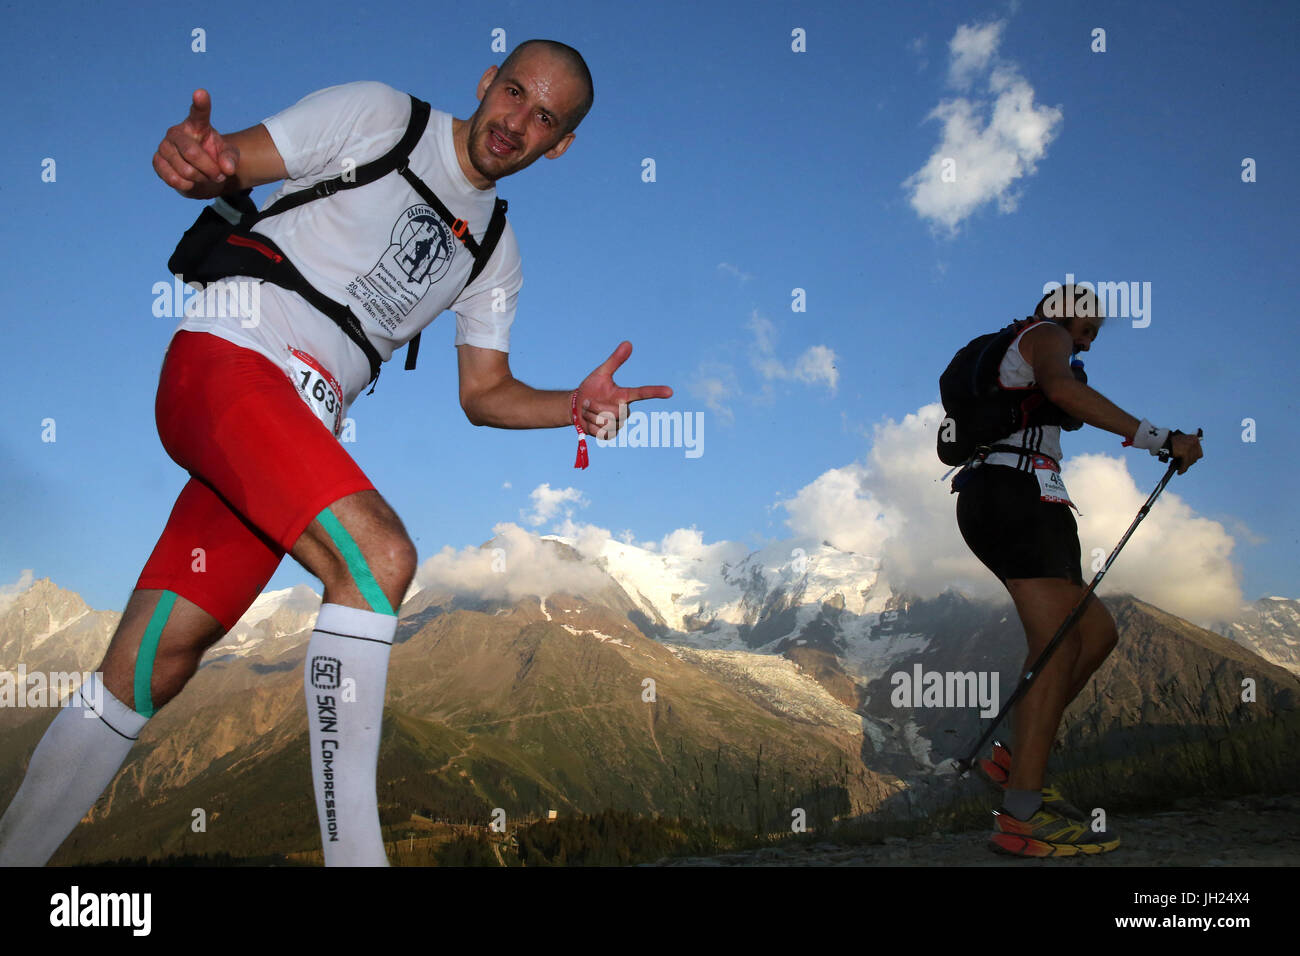 The Ultra-Trail du Mont-Blanc. A a single-stage mountain ultramarathon in the Alps. France. - Stock Image